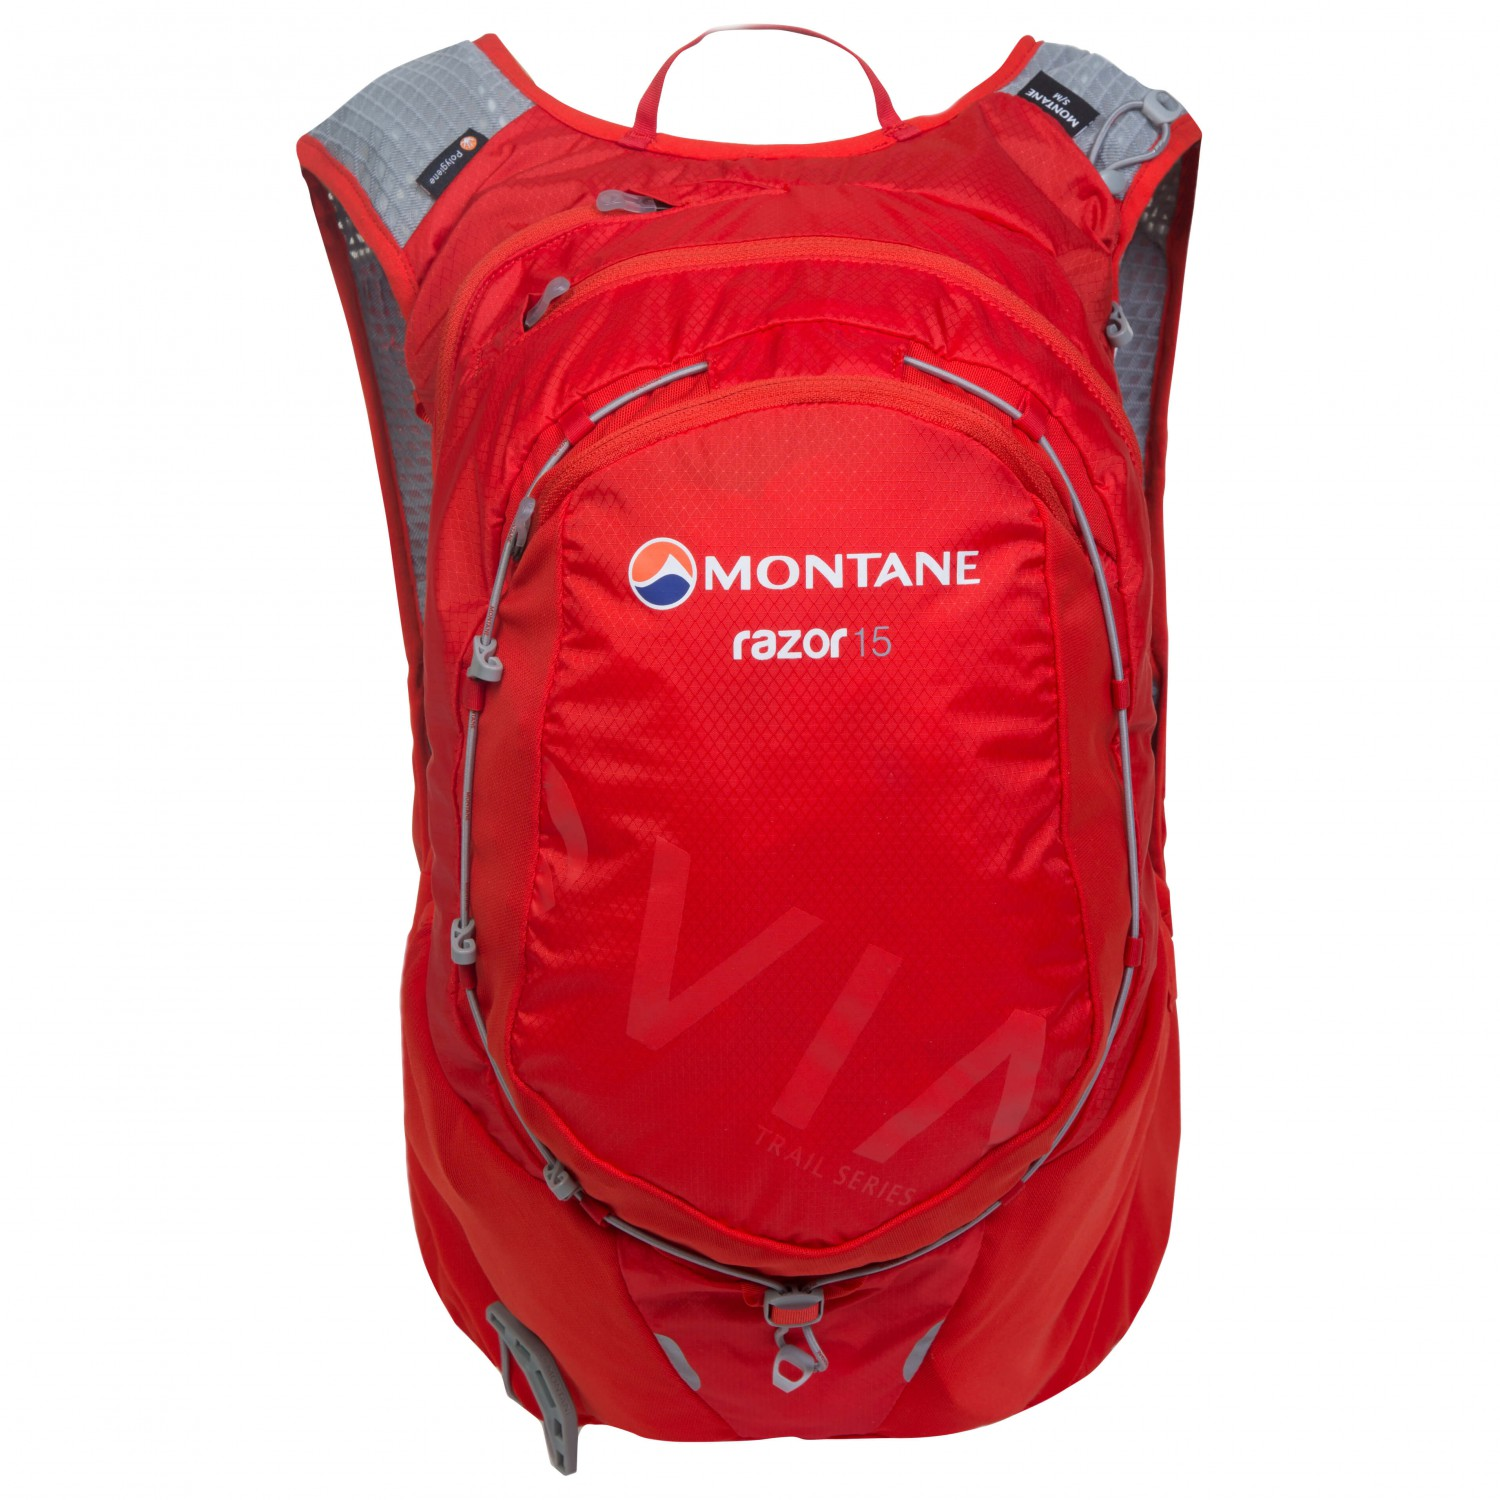 Montane VIA Razor 15 Hydration Pack | Travel bags